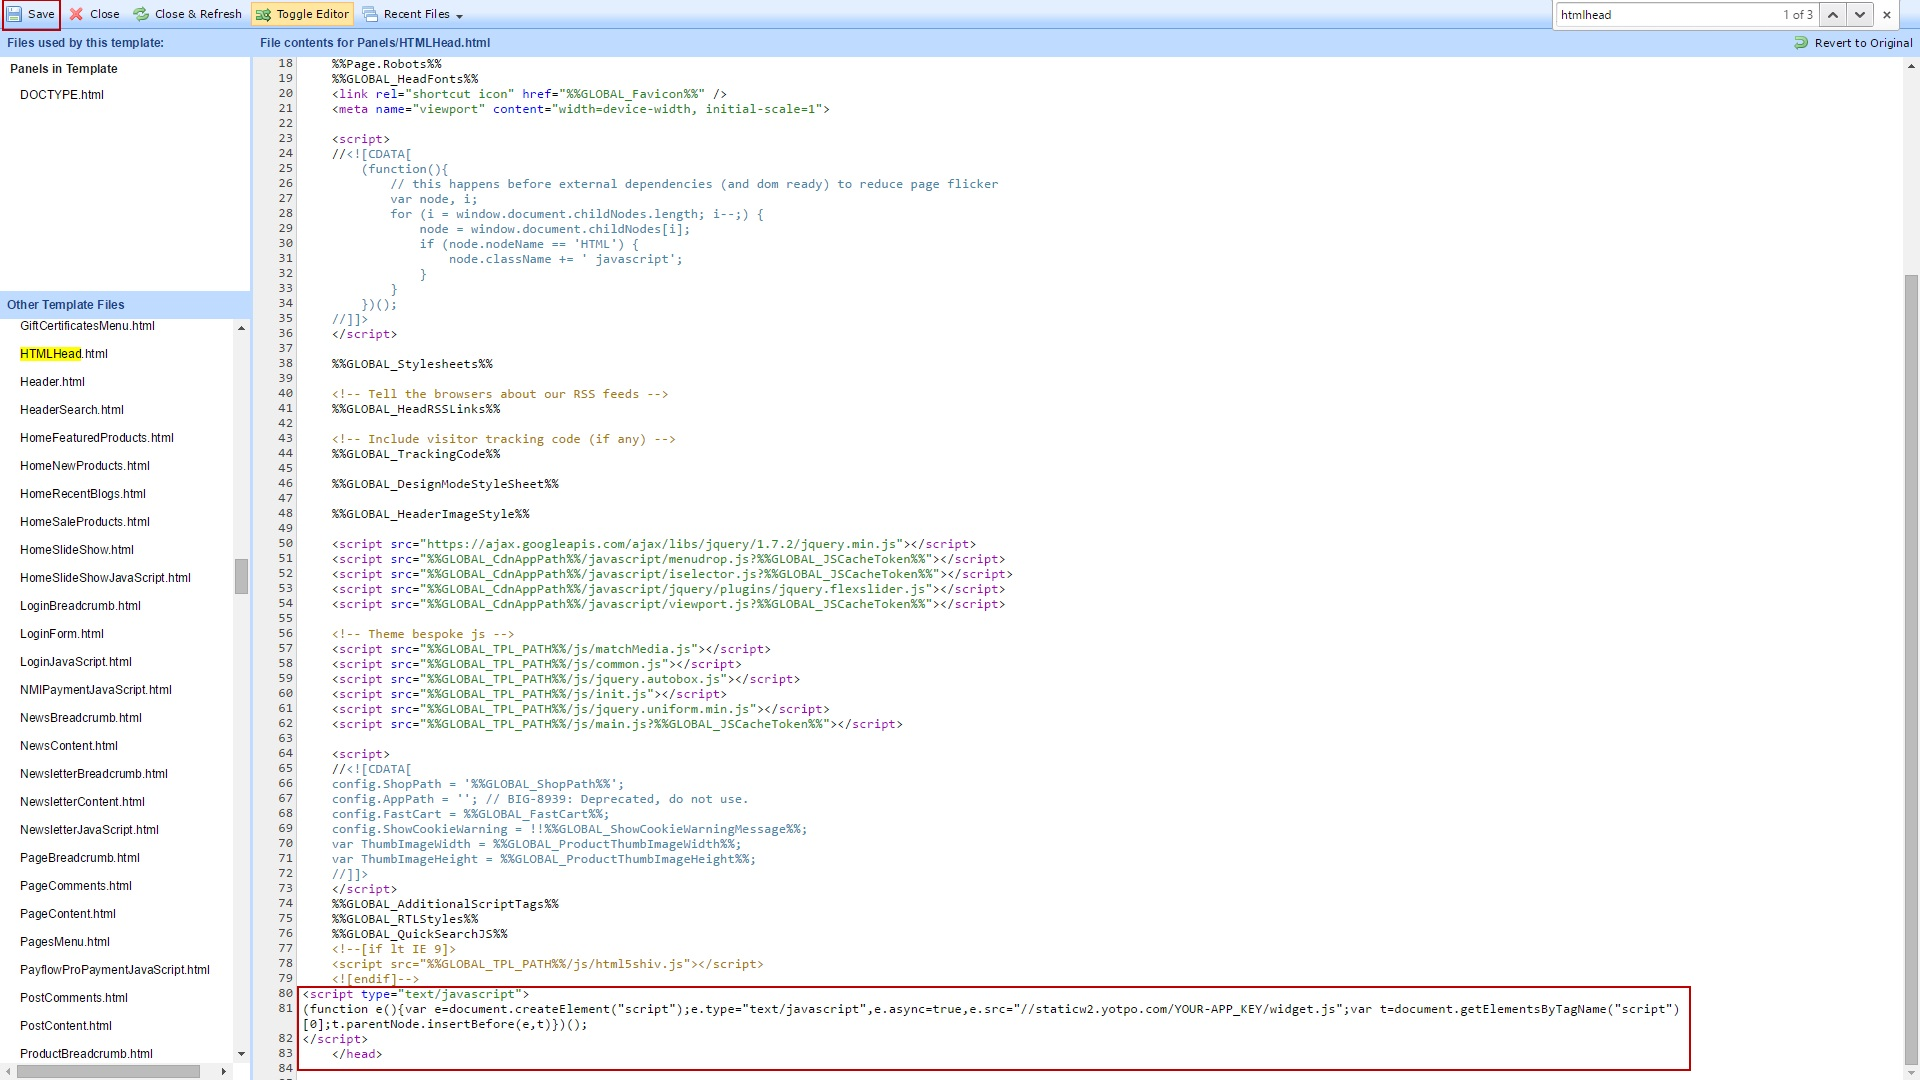 Editing the source code